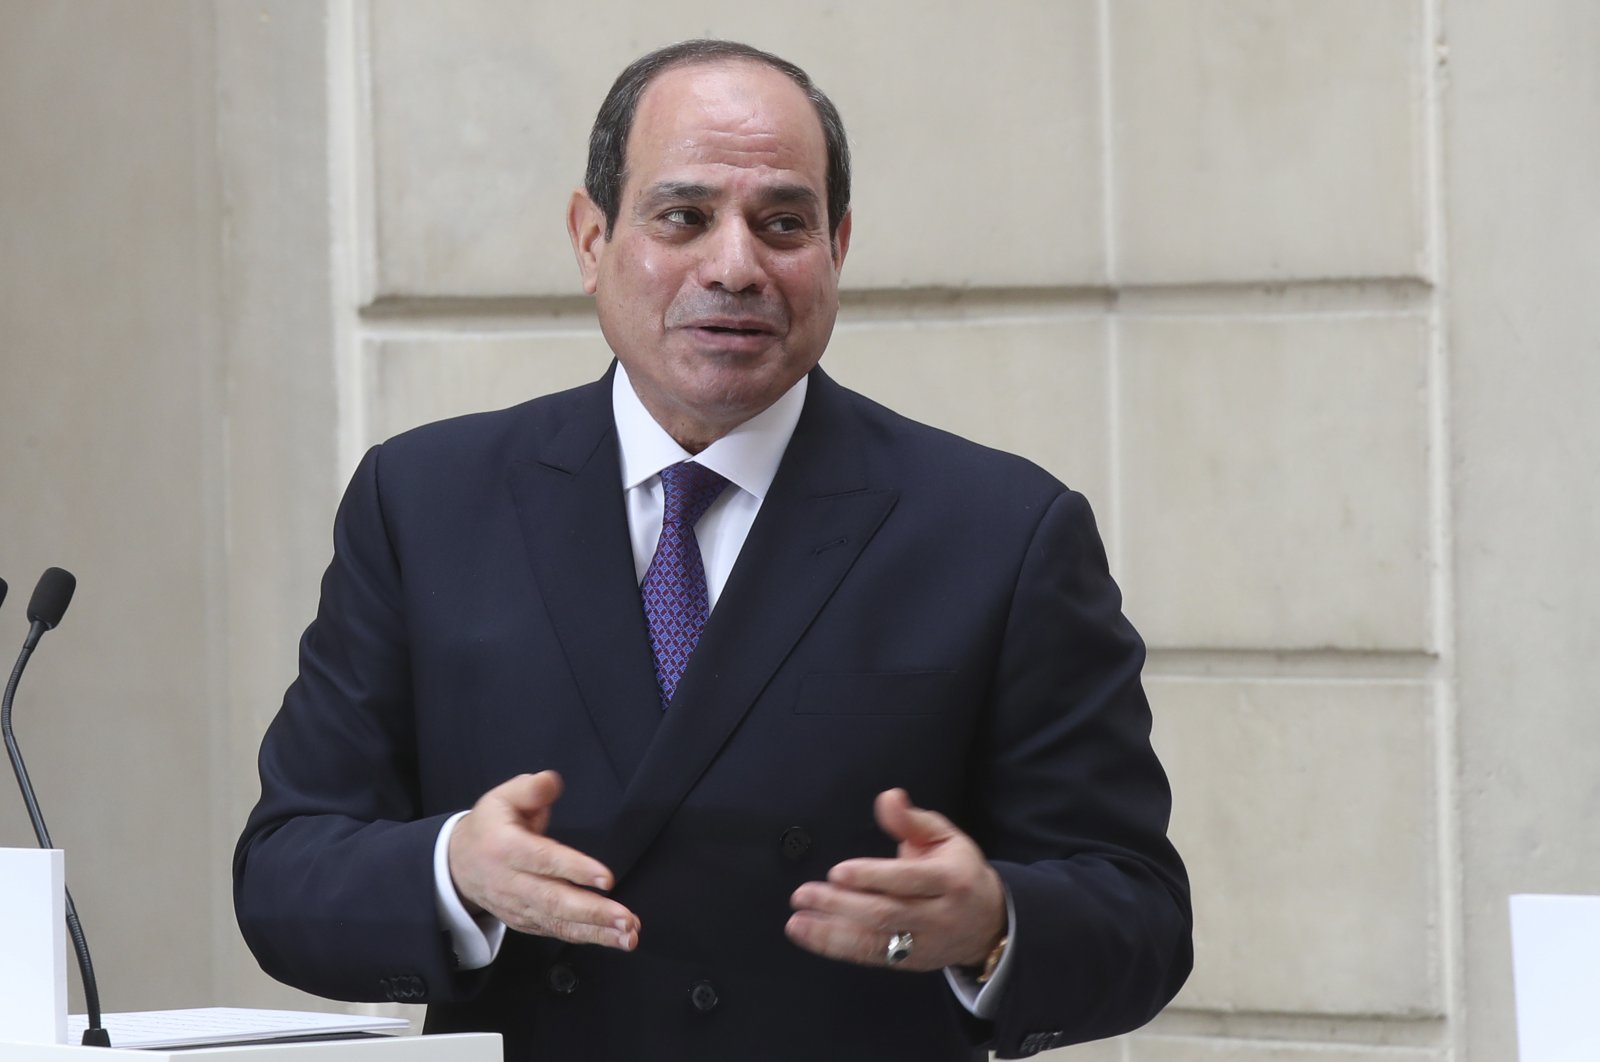 Egyptian President Abdel-Fattah el-Sissi speaks at a joint press conference with French President Emmanuel Macron (not pictured) in Paris, France, Dec. 7, 2020. (AP File Photo)